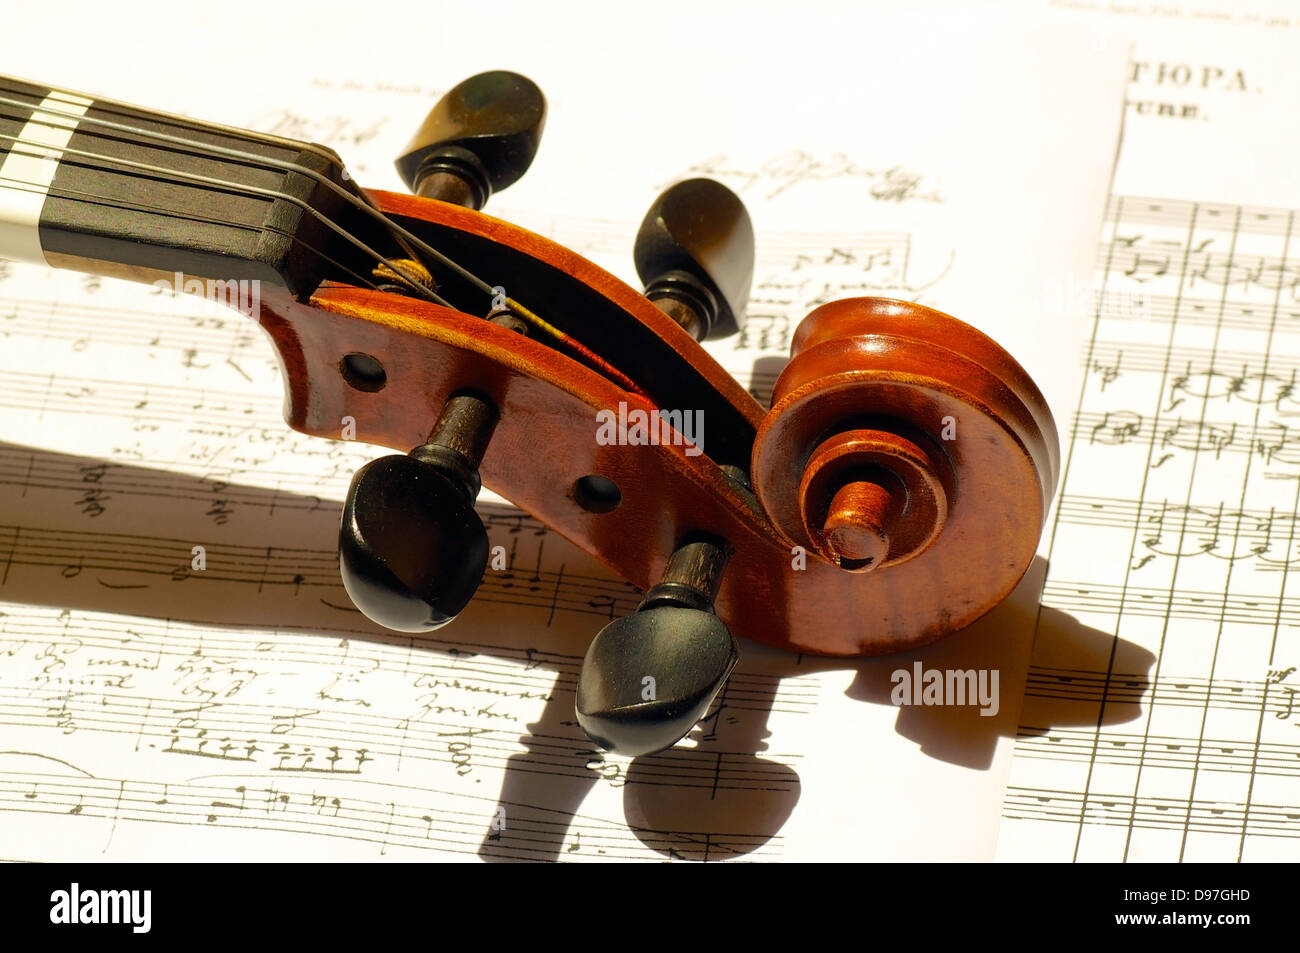 Scroll, peg and part of neck of a beautiful violin - Stock Image